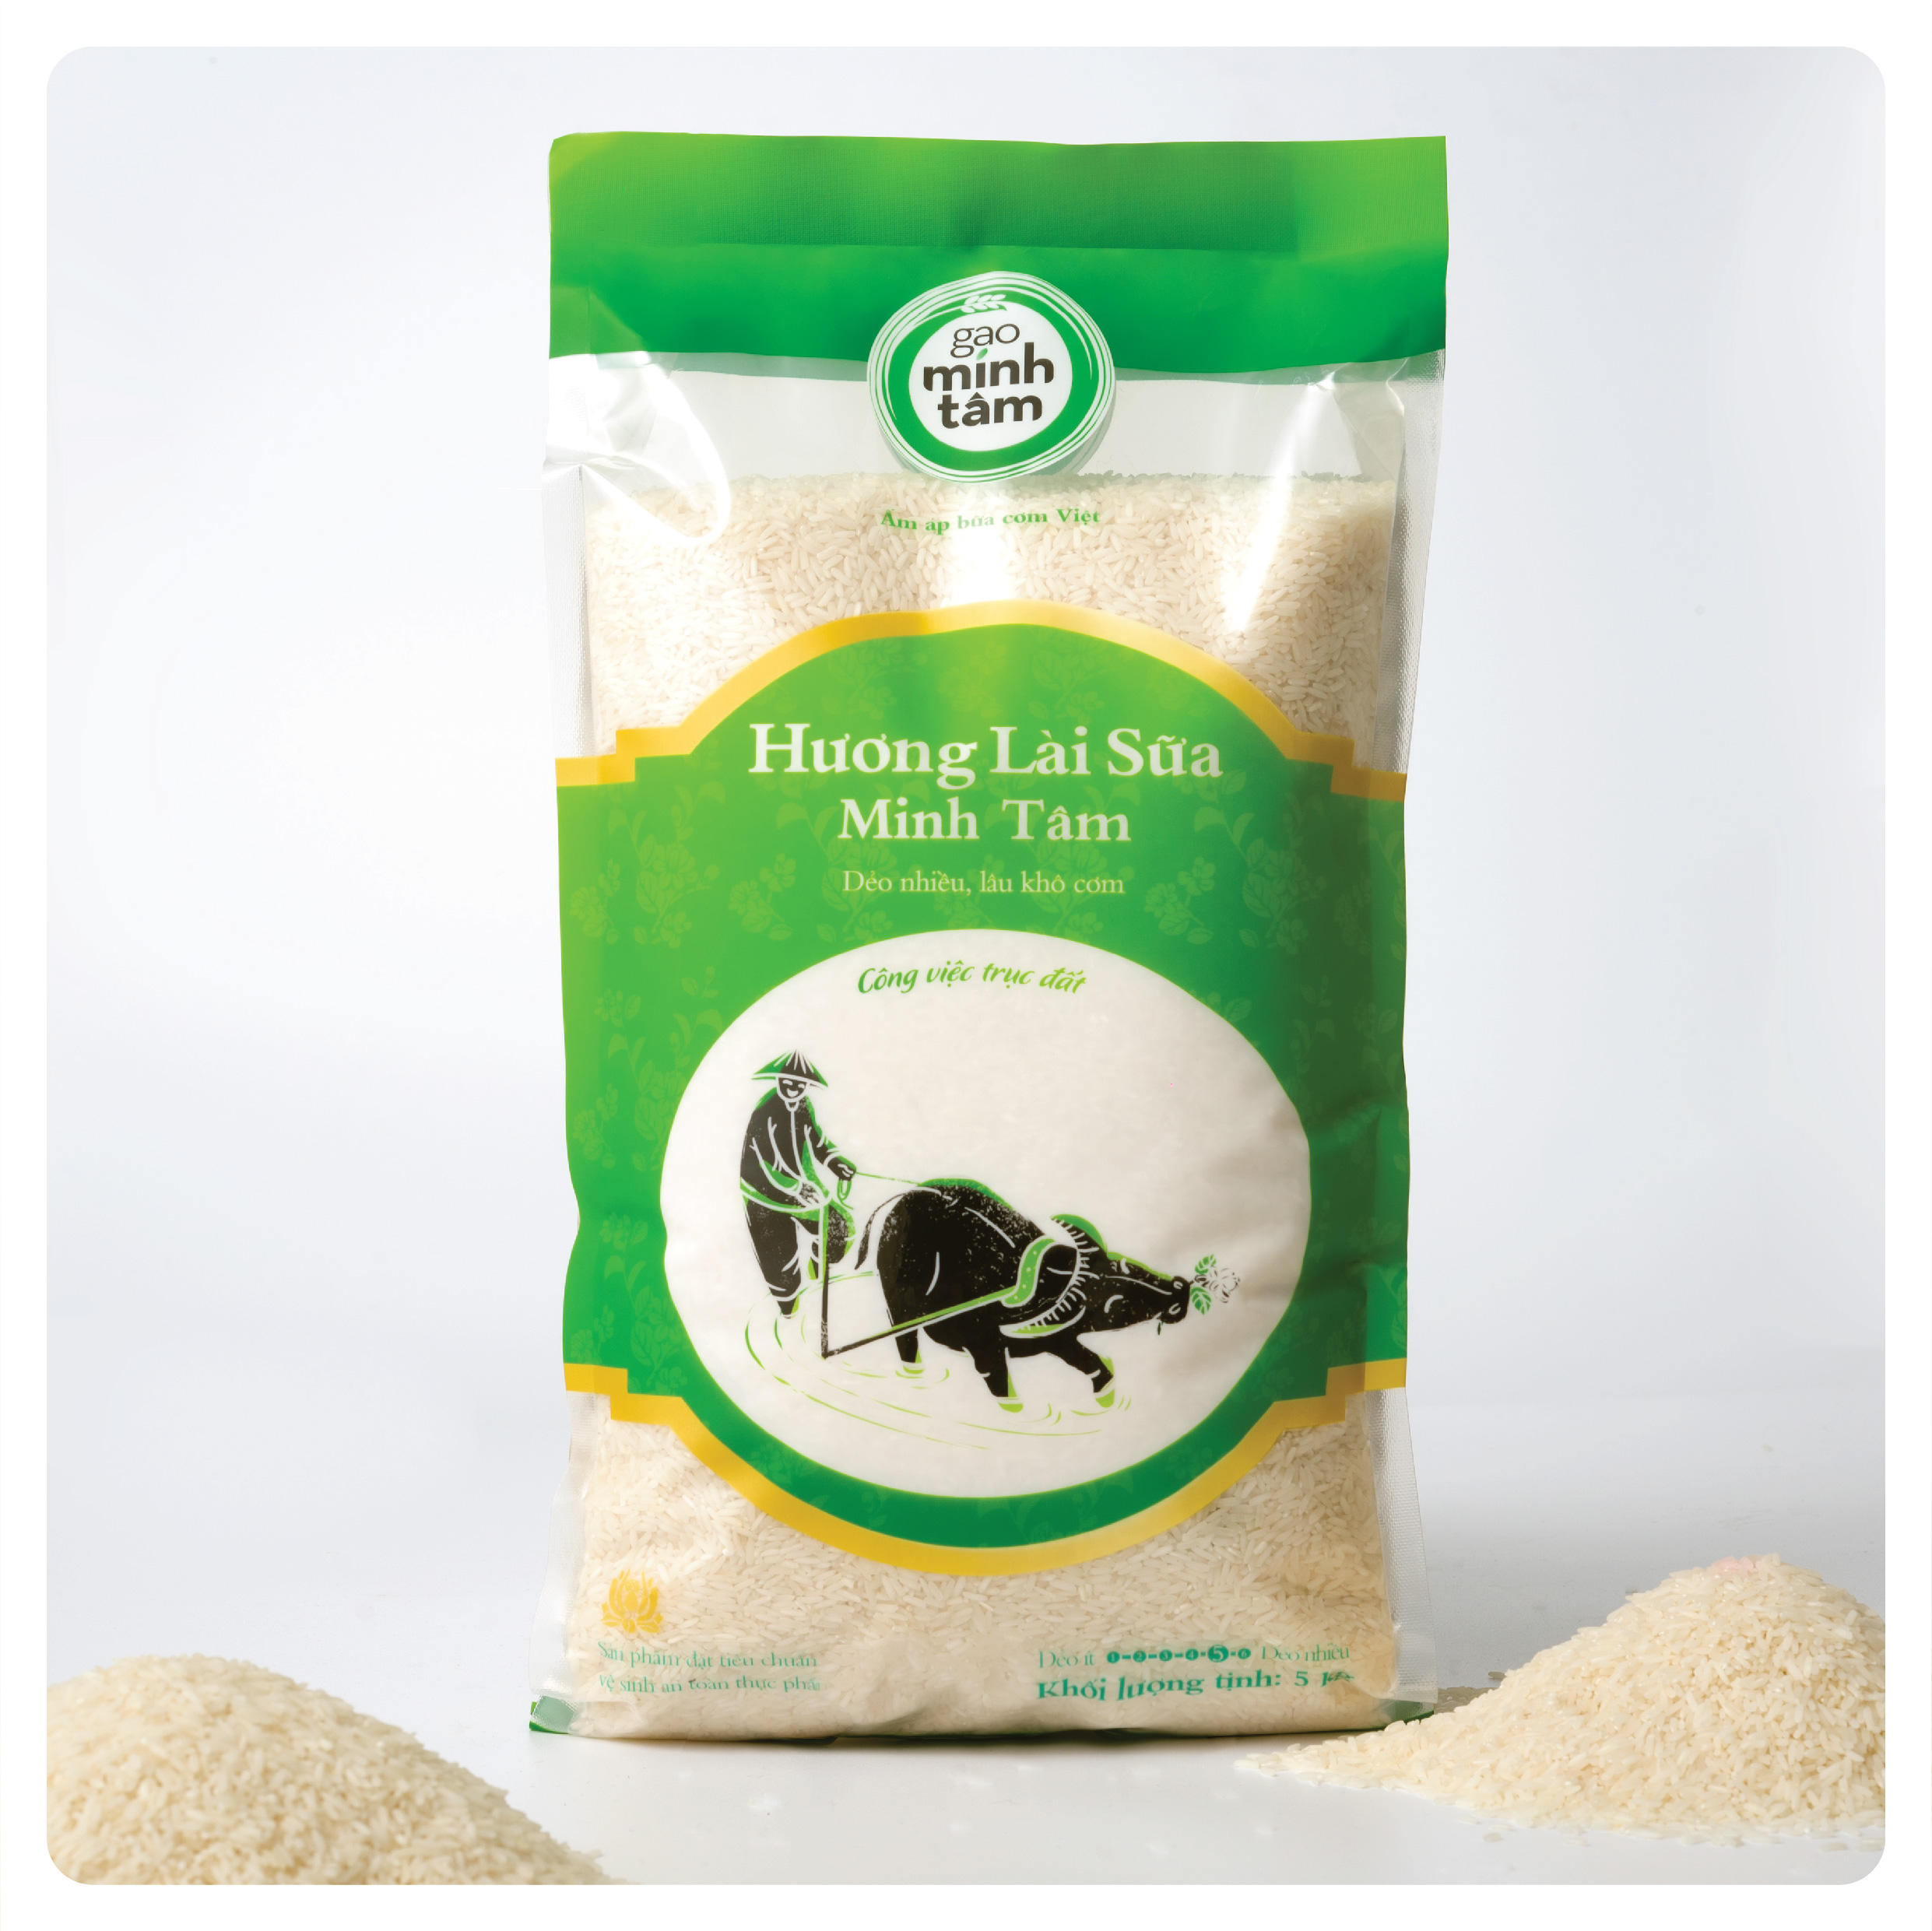 Tasty Aromatic Kind Sticky Flavor Huong Lai Medium Grain Rice With White Color From Vietnam